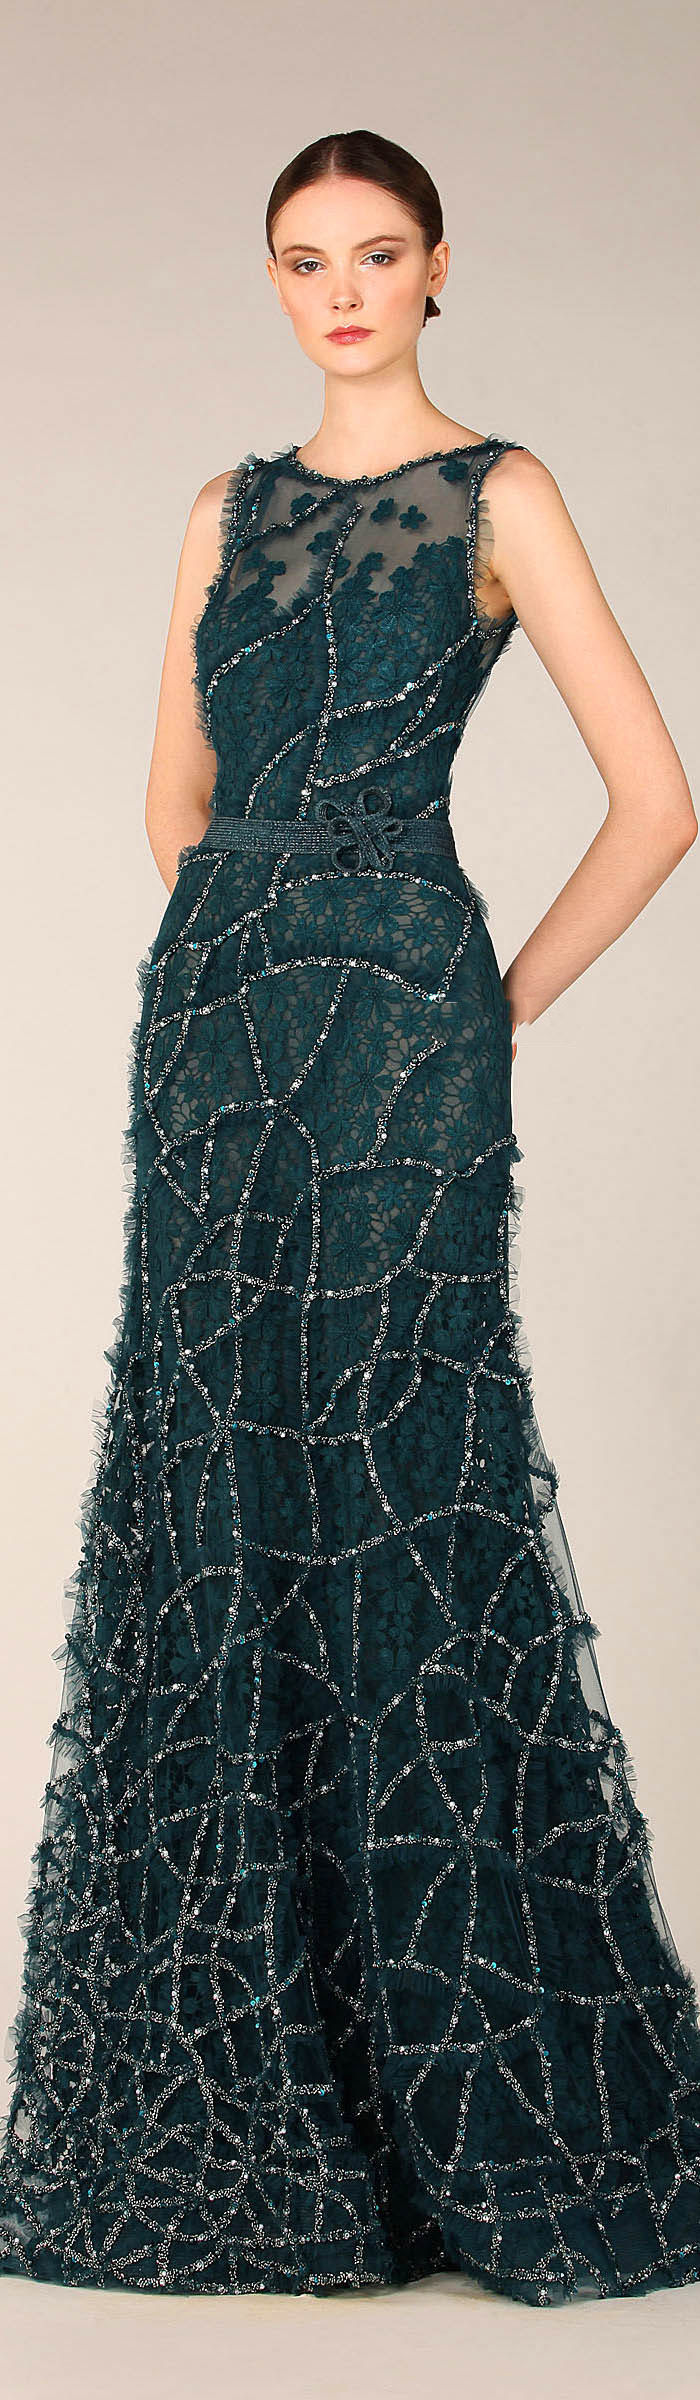 Tony Ward Fall Winter 2013-14 (8)